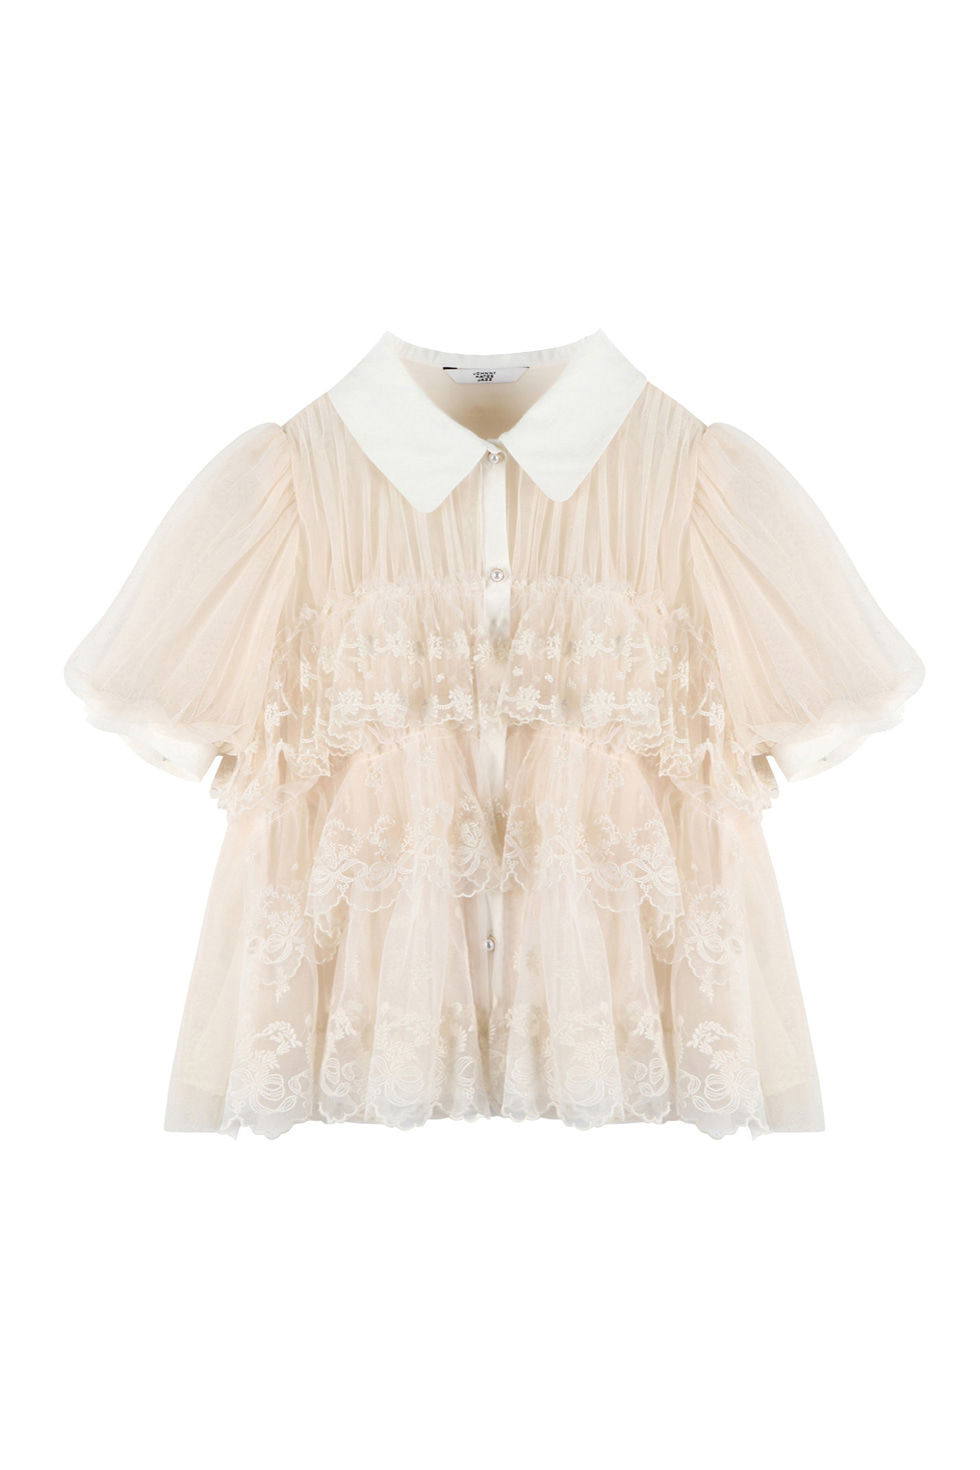 TULLED LACE BLOUSE - IVORY